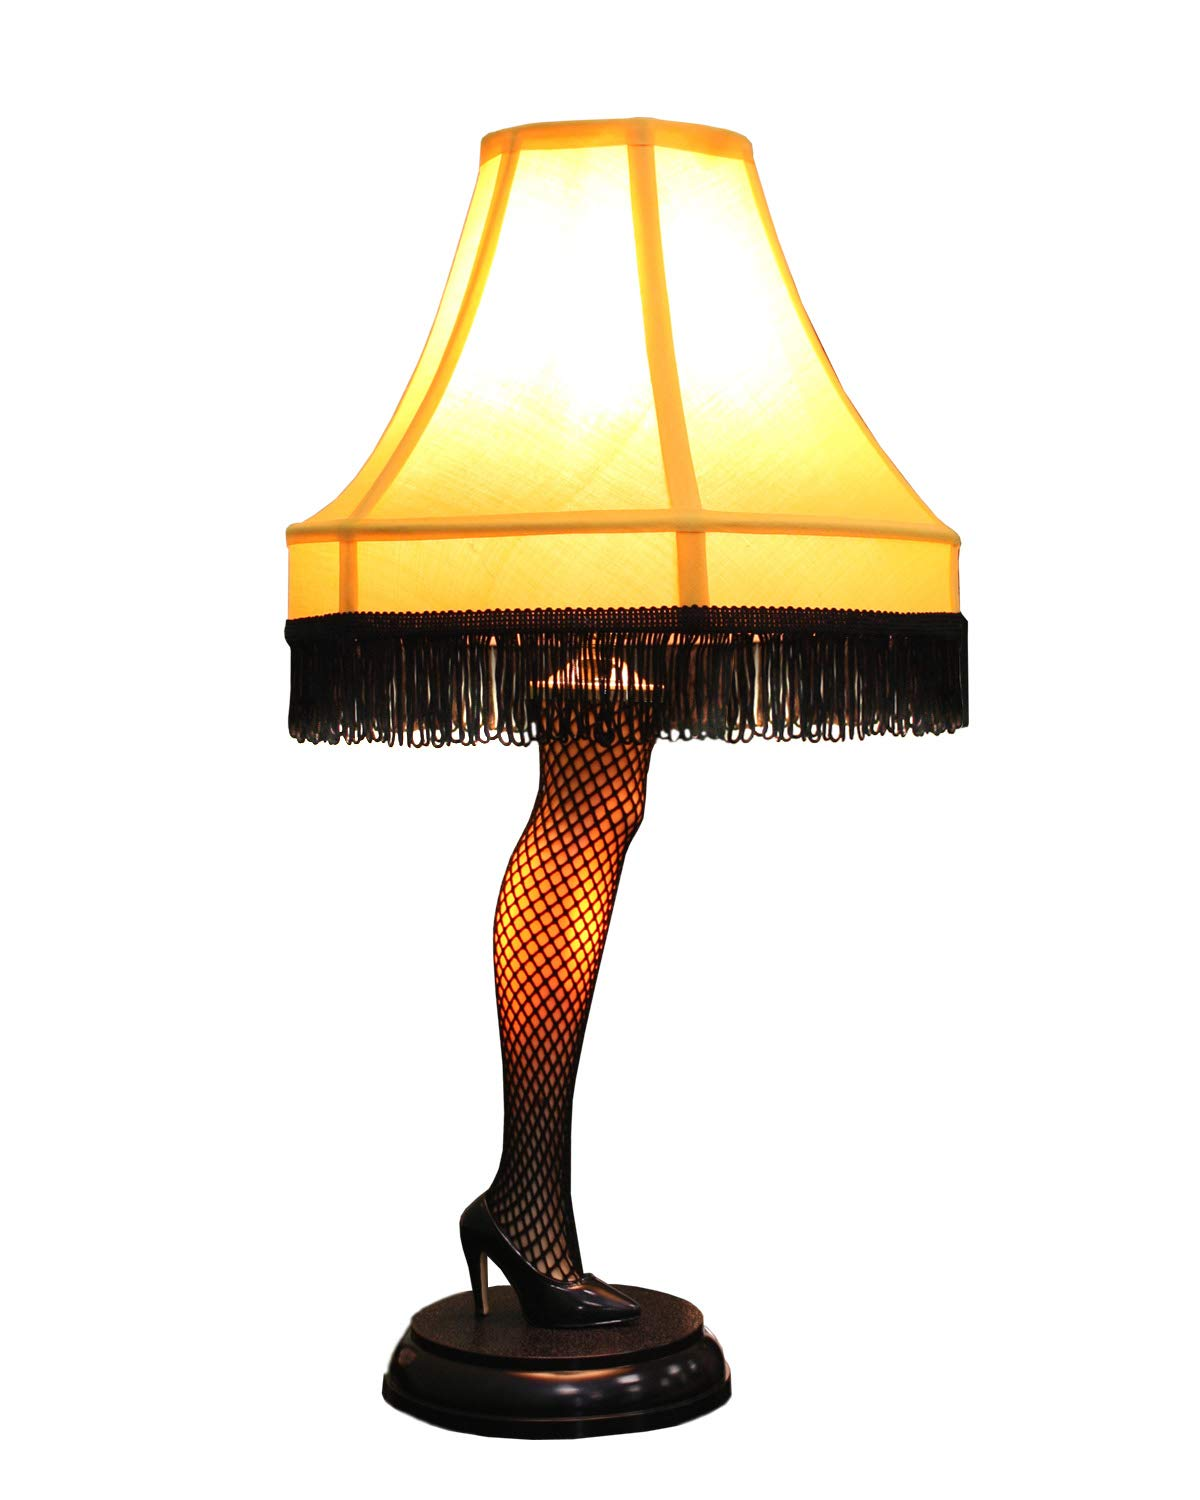 A Christmas Story 20 inch Leg Lamp Prop Replica by NECA 40000